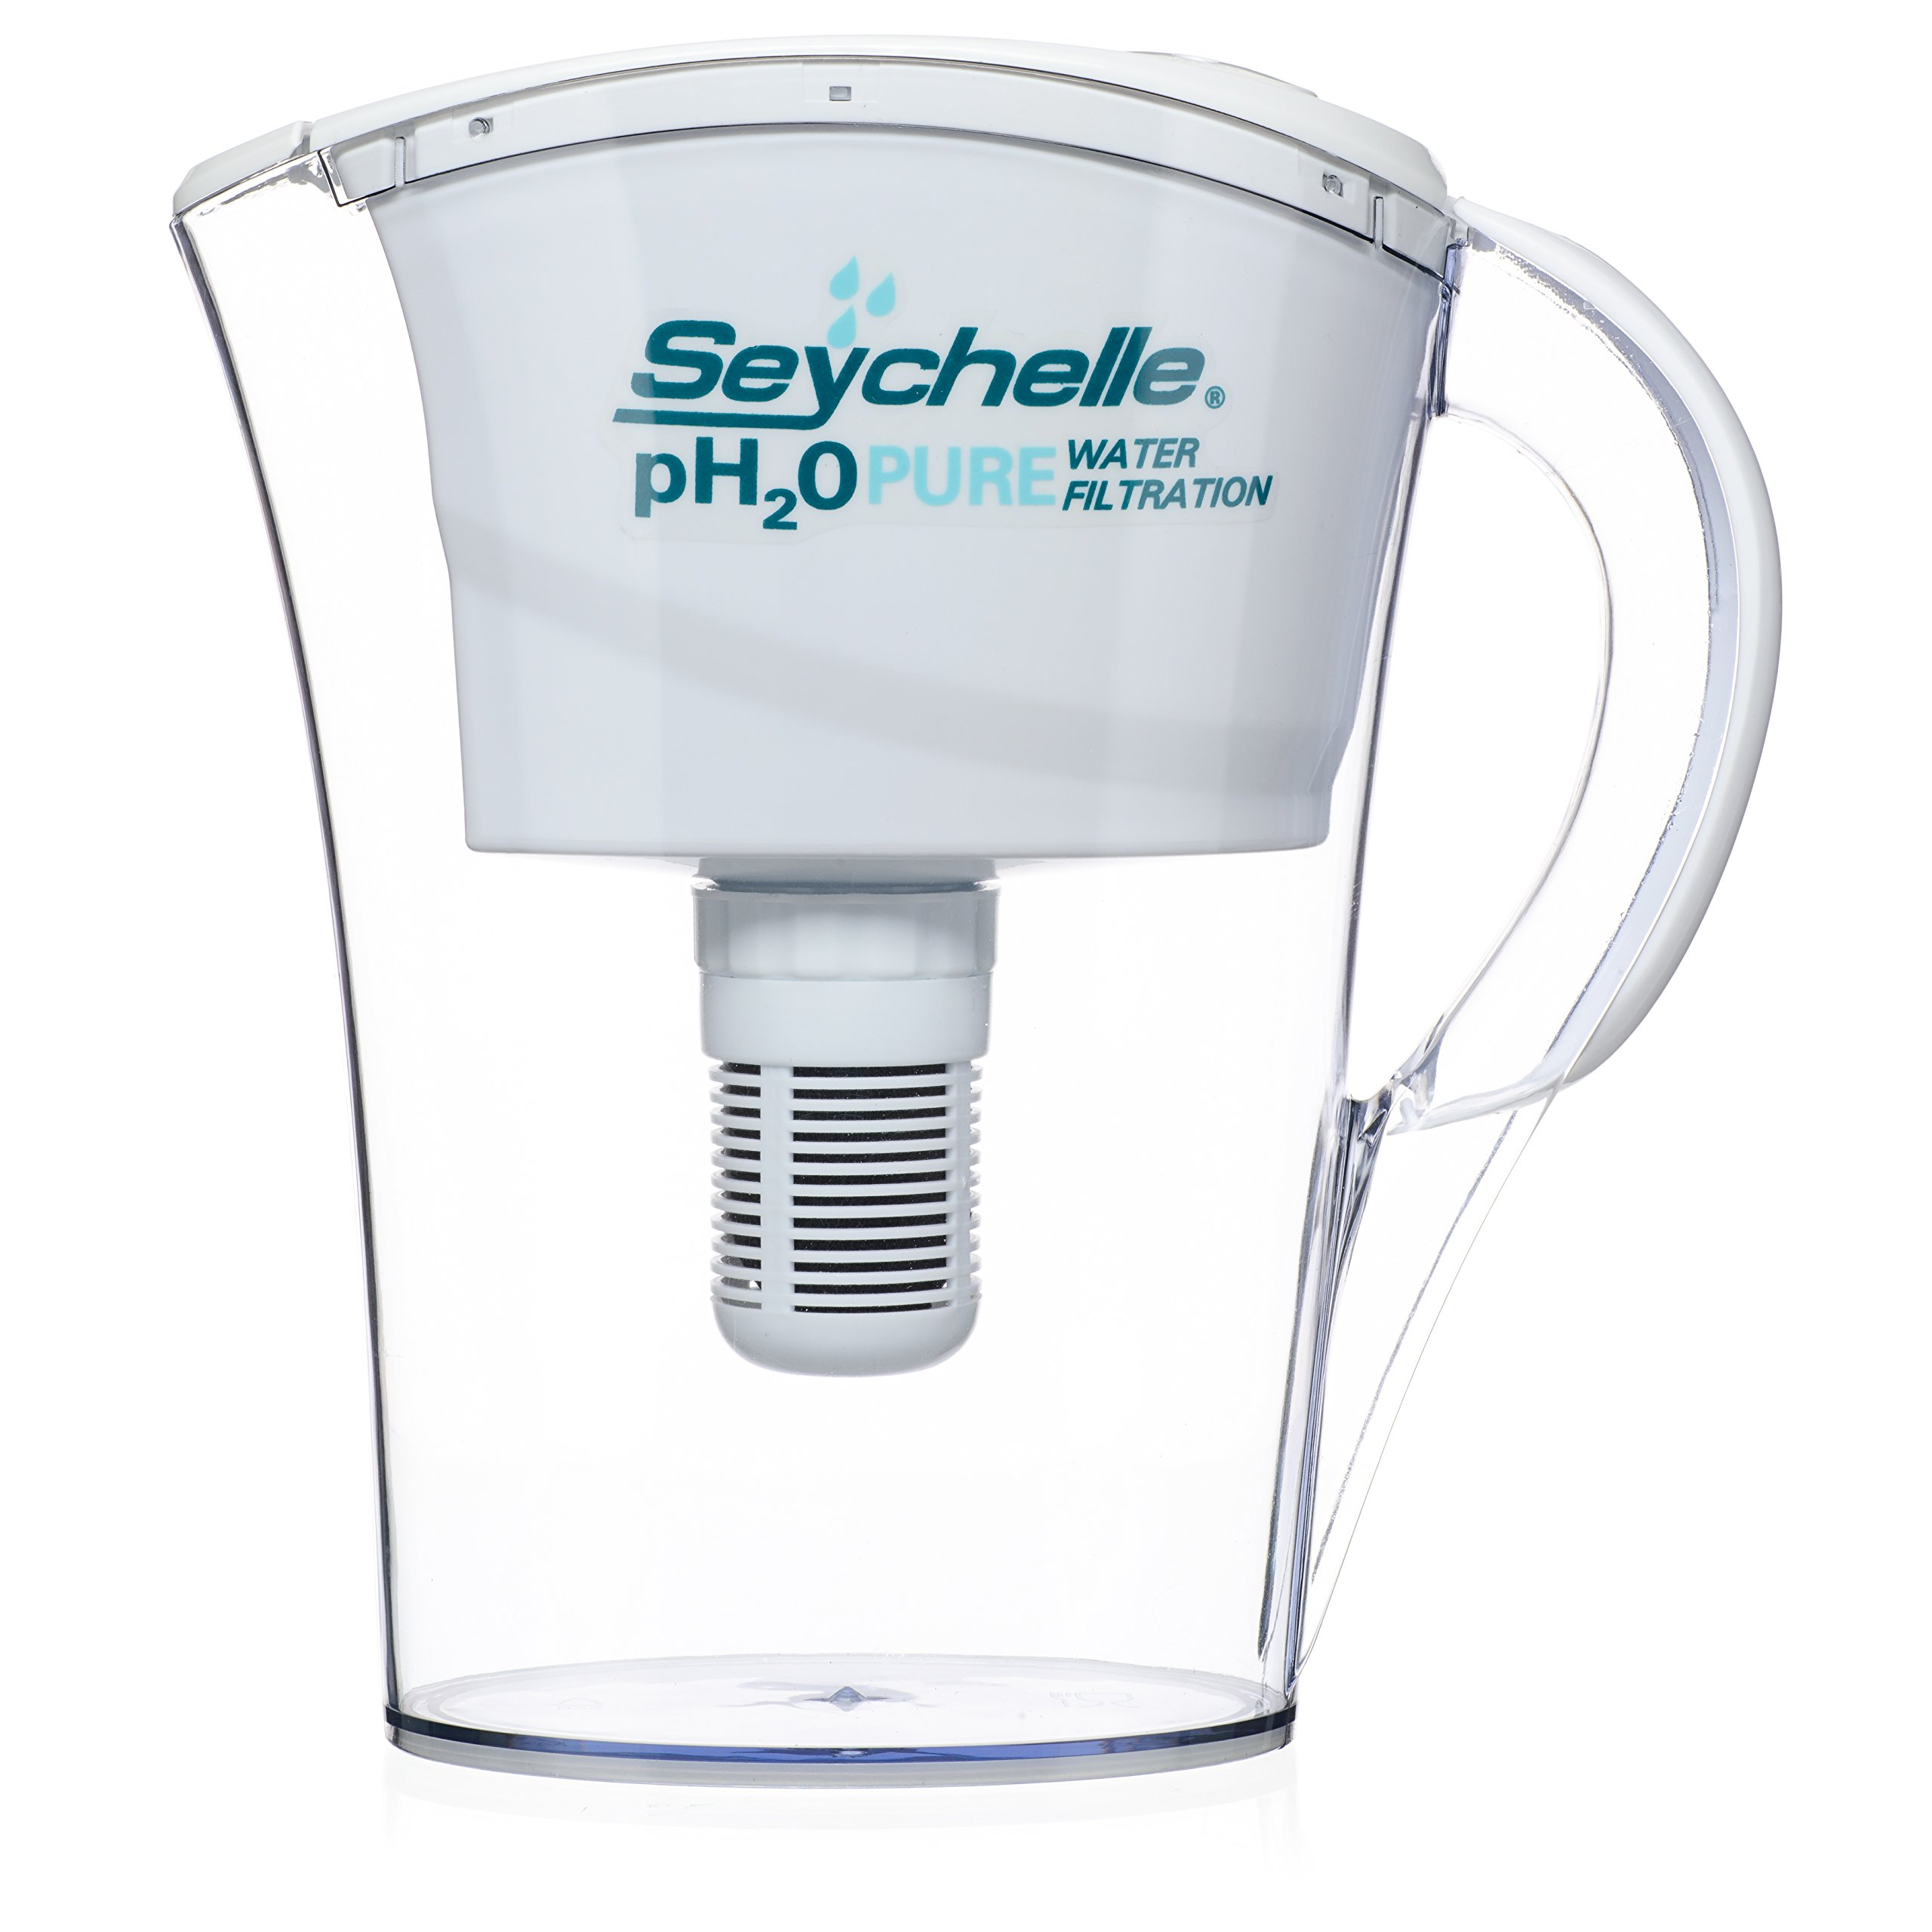 Seychelle pH2O Alkaline Water Filter Pitcher - pH Enhancing Filtration - 100 Gallon Capacity - USA-Made Filter, BPA-Free